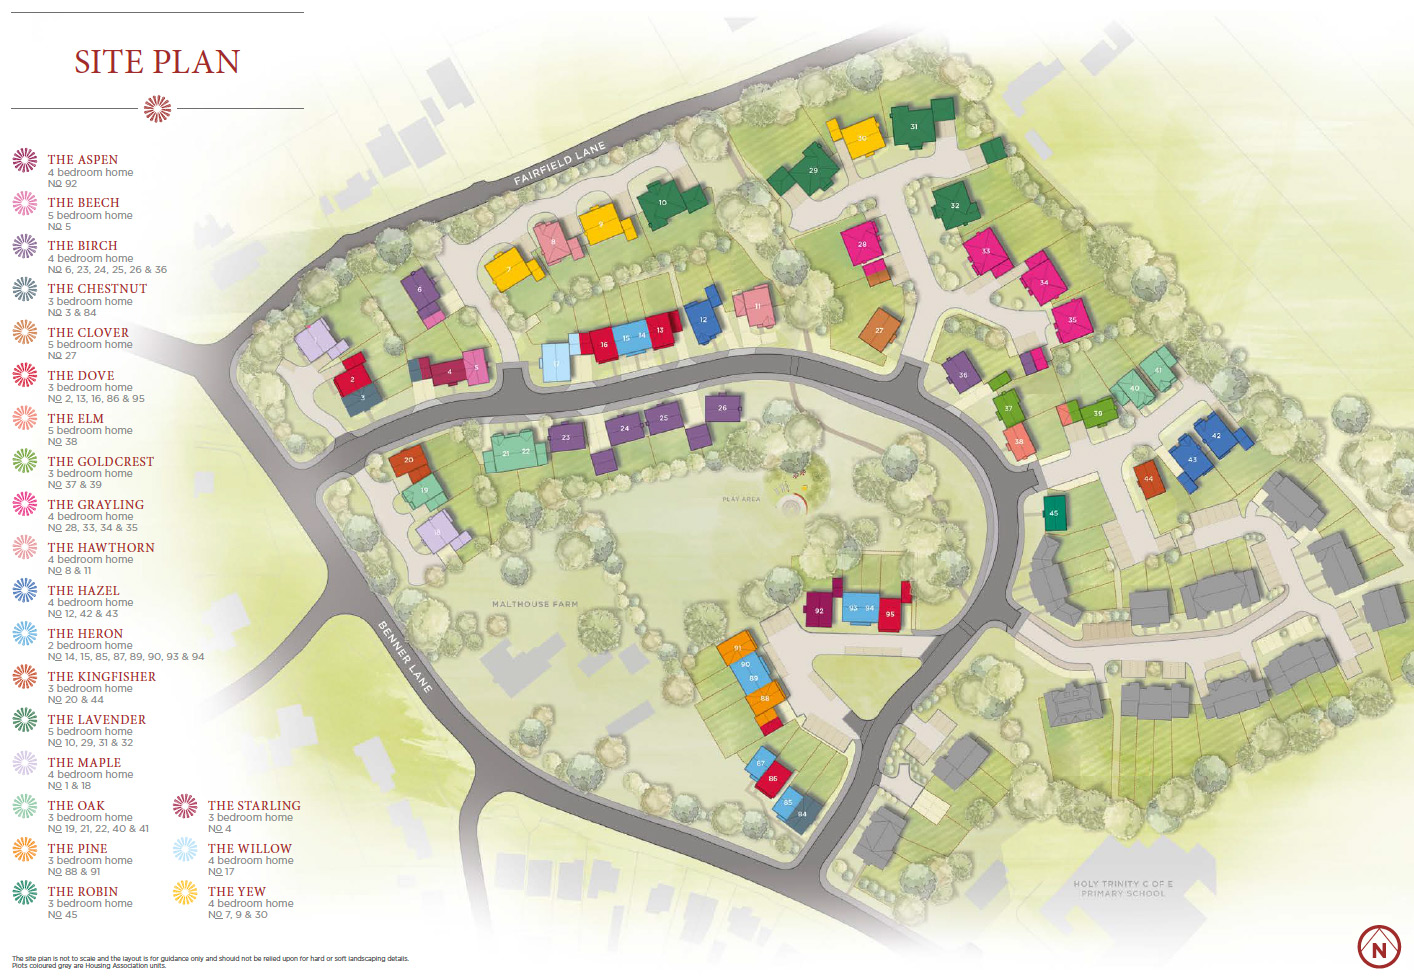 Plot 86 – The Dove Siteplan